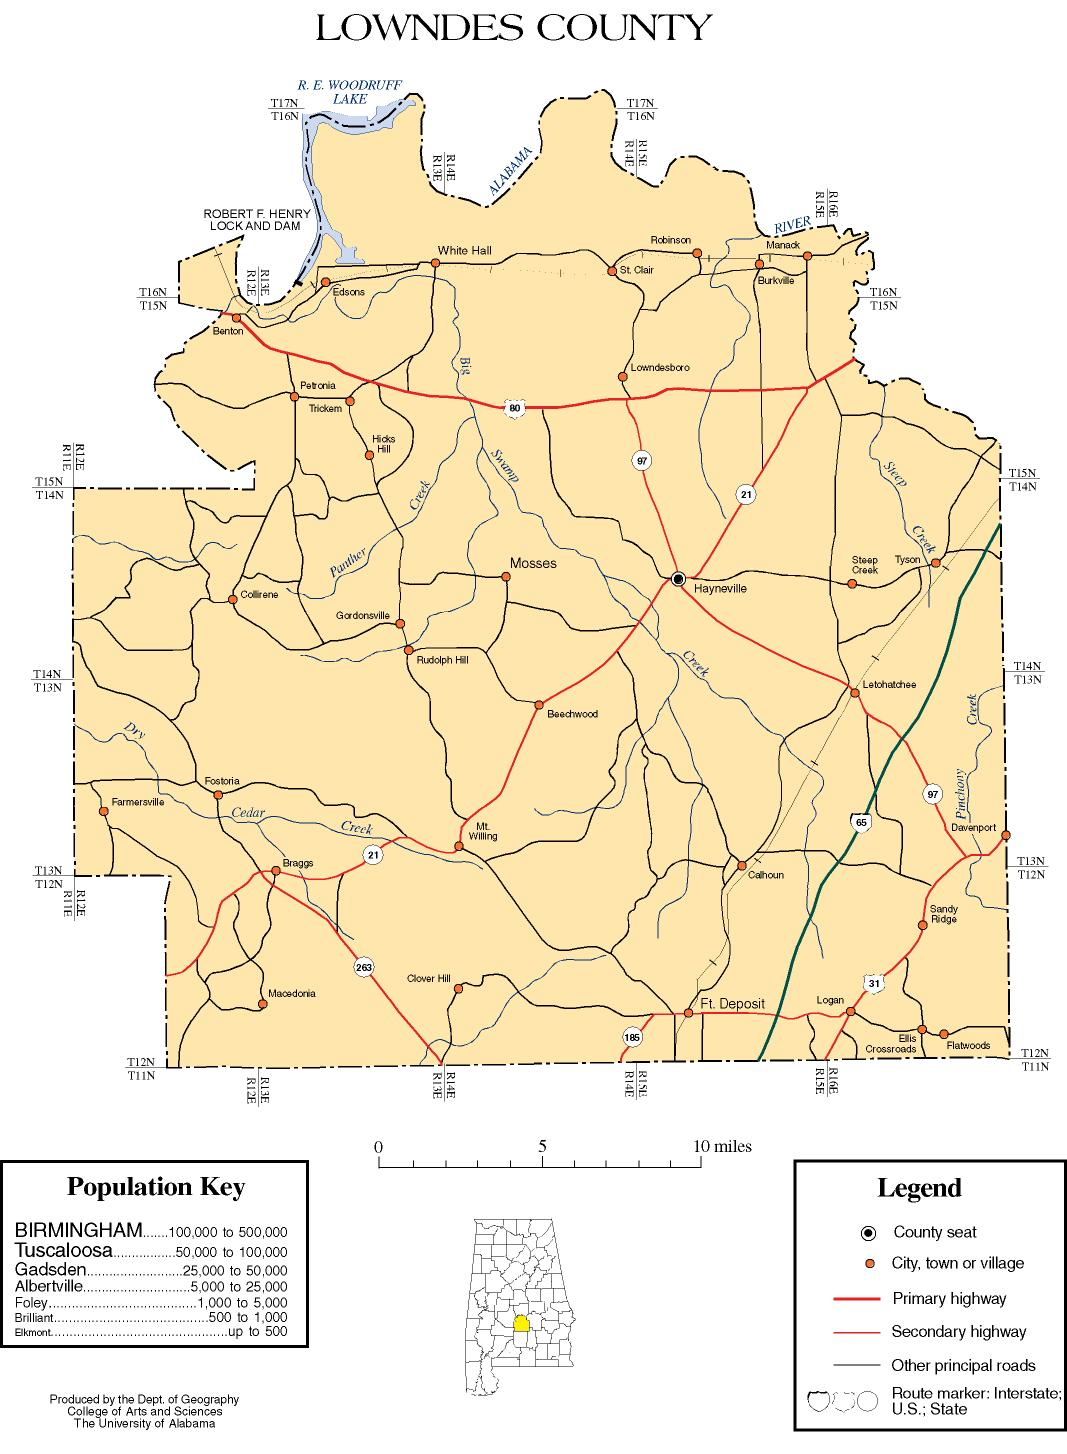 Lowndes County, Alabama history, ADAH on map of oxford alabama, map of troy university alabama, map of alabama and georgia, fort deposit alabama, lowndes county schools alabama, map of georgiana alabama, map of cobb county georgia, map of wetumpka alabama, map of louisiana alabama, map of carroll county mississippi, map of mobile alabama, cities in calhoun county alabama, map of alabama river alabama, cities in russell county alabama, lowndes middle school alabama, map of lowndes county mississippi, map of eclectic alabama, map of hayneville alabama, cities in lowndes county alabama, plantations in lowndes county alabama,